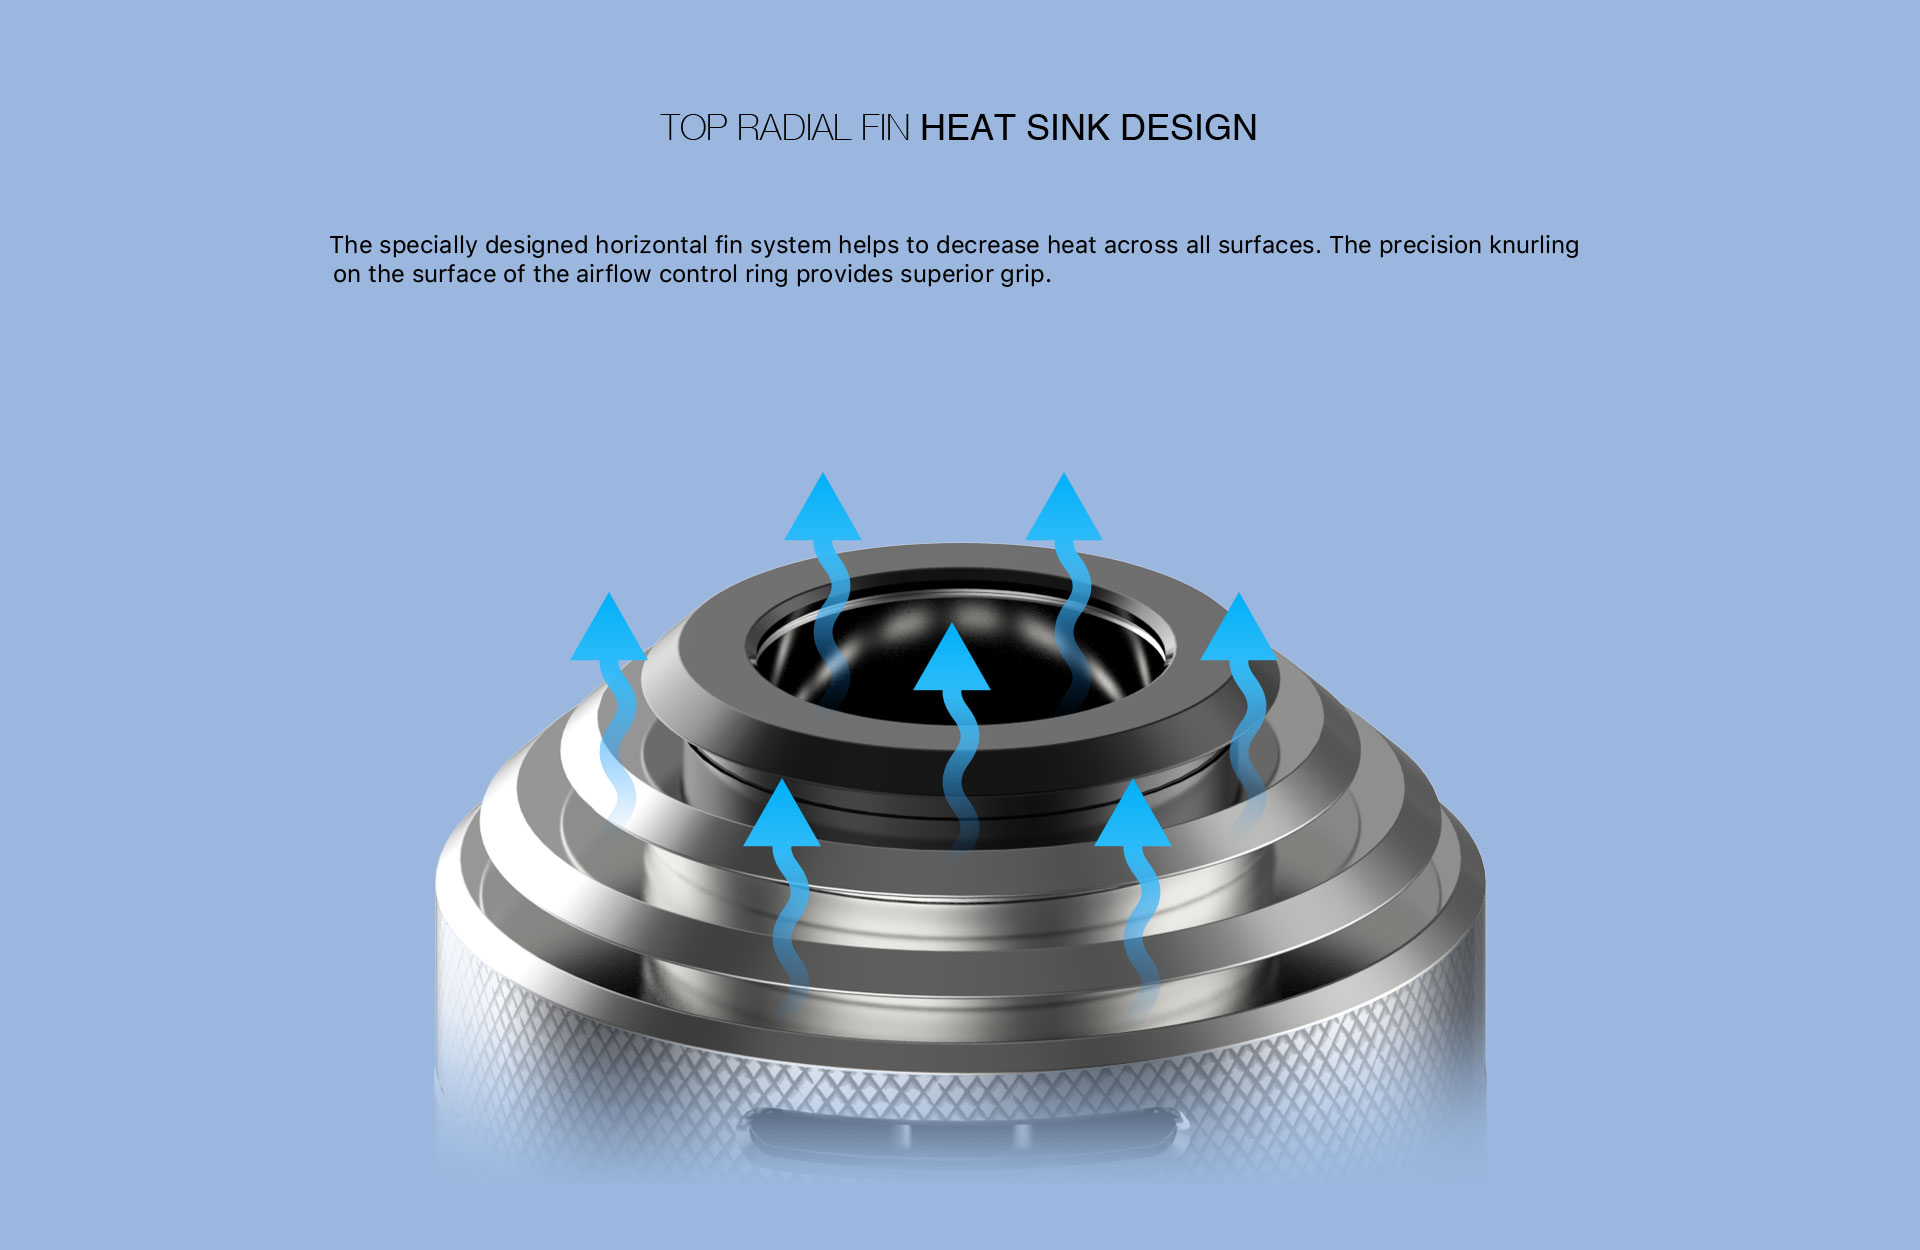 Aspire Nautilus XS Tank Heat Sink Design